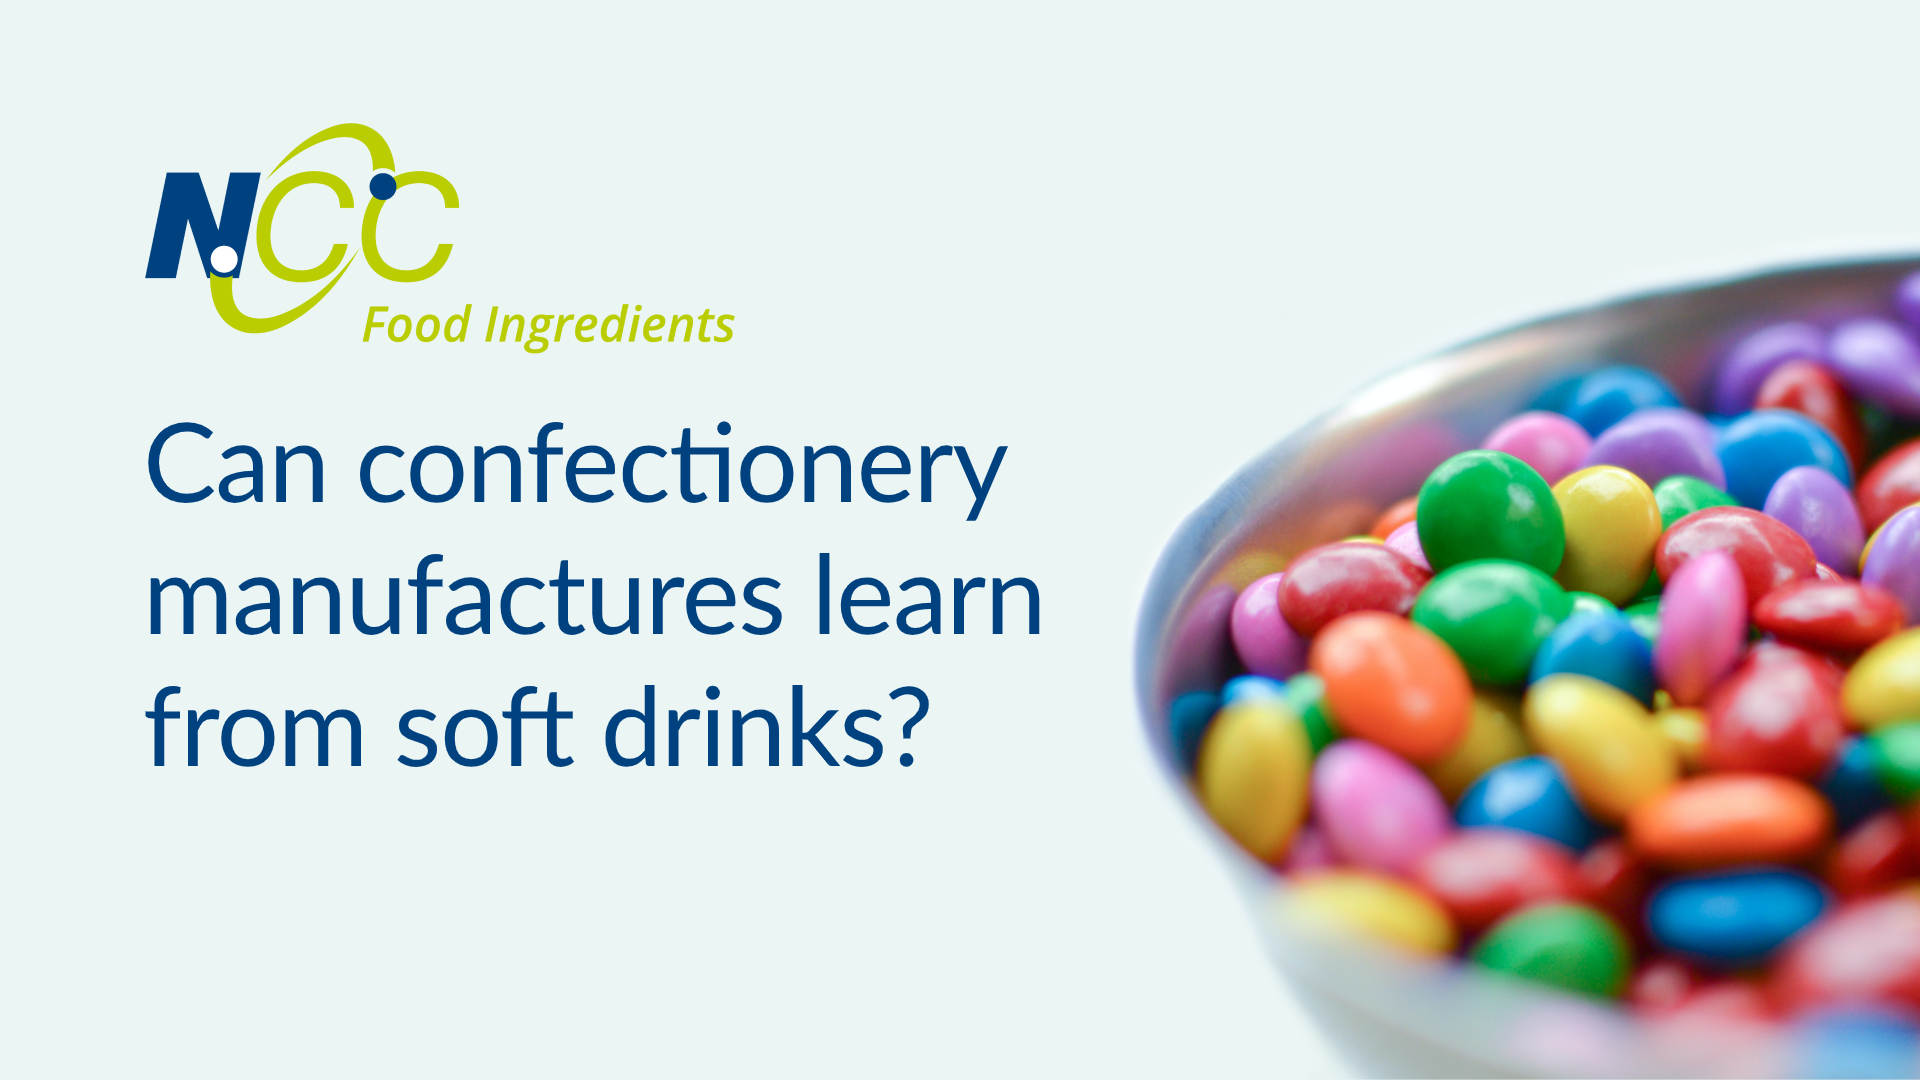 Can confectionery manufactures learn from soft drinks?